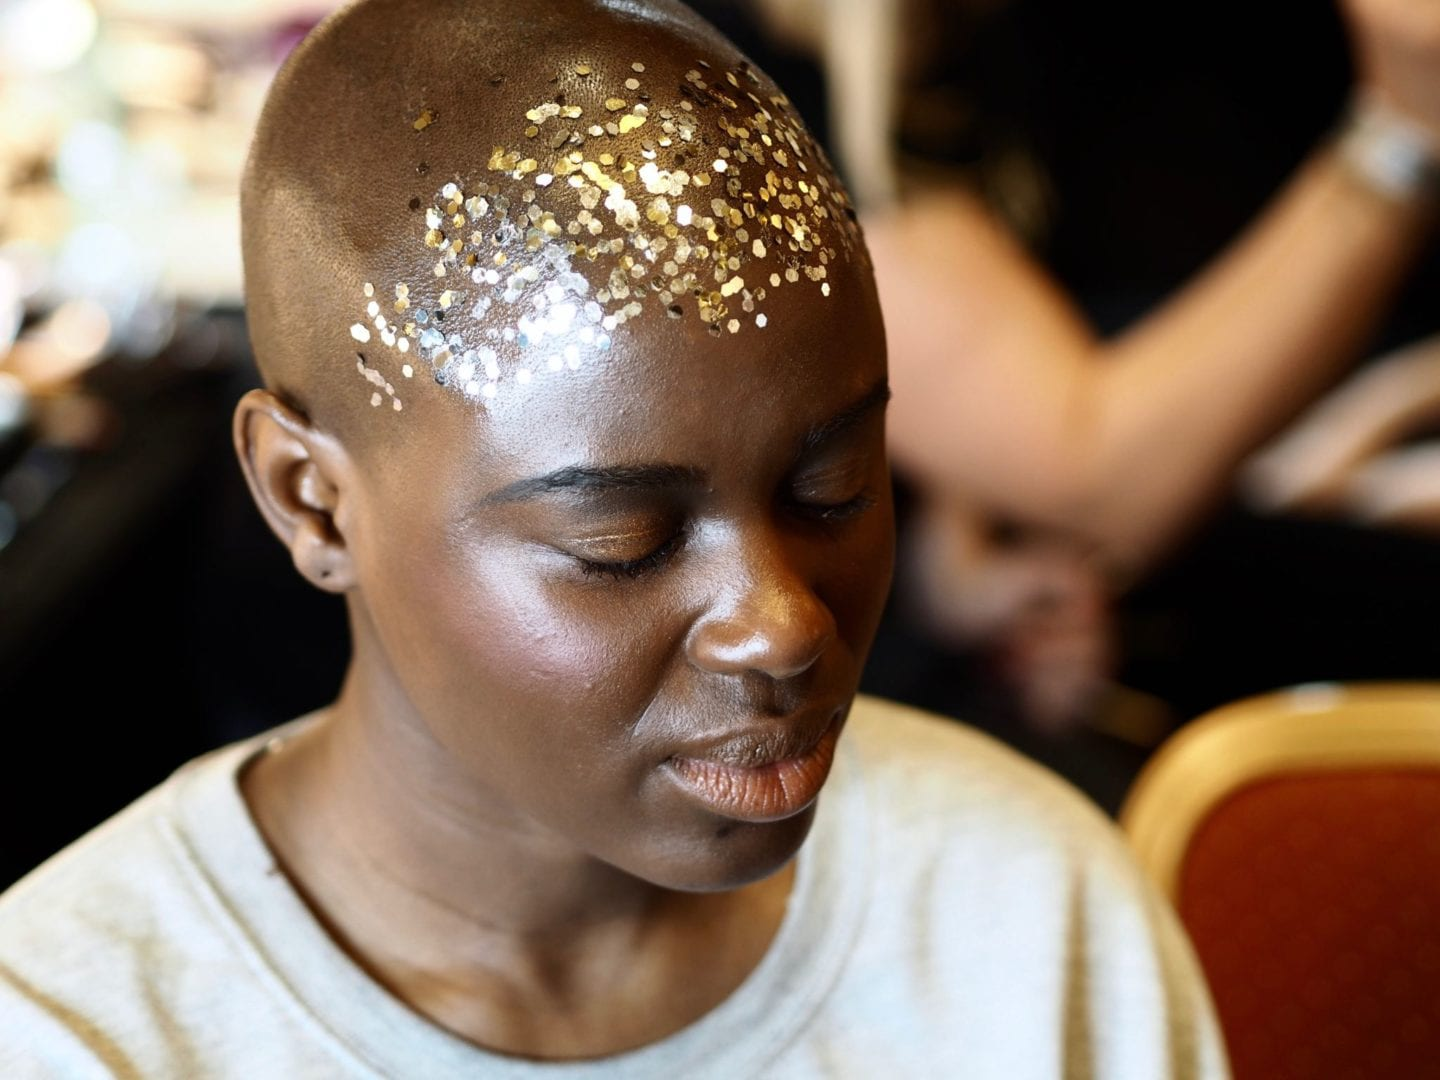 Backstage-at-LFW-With-Hellavagirl-X-Benefit-Cosmetics-forehead-glitter